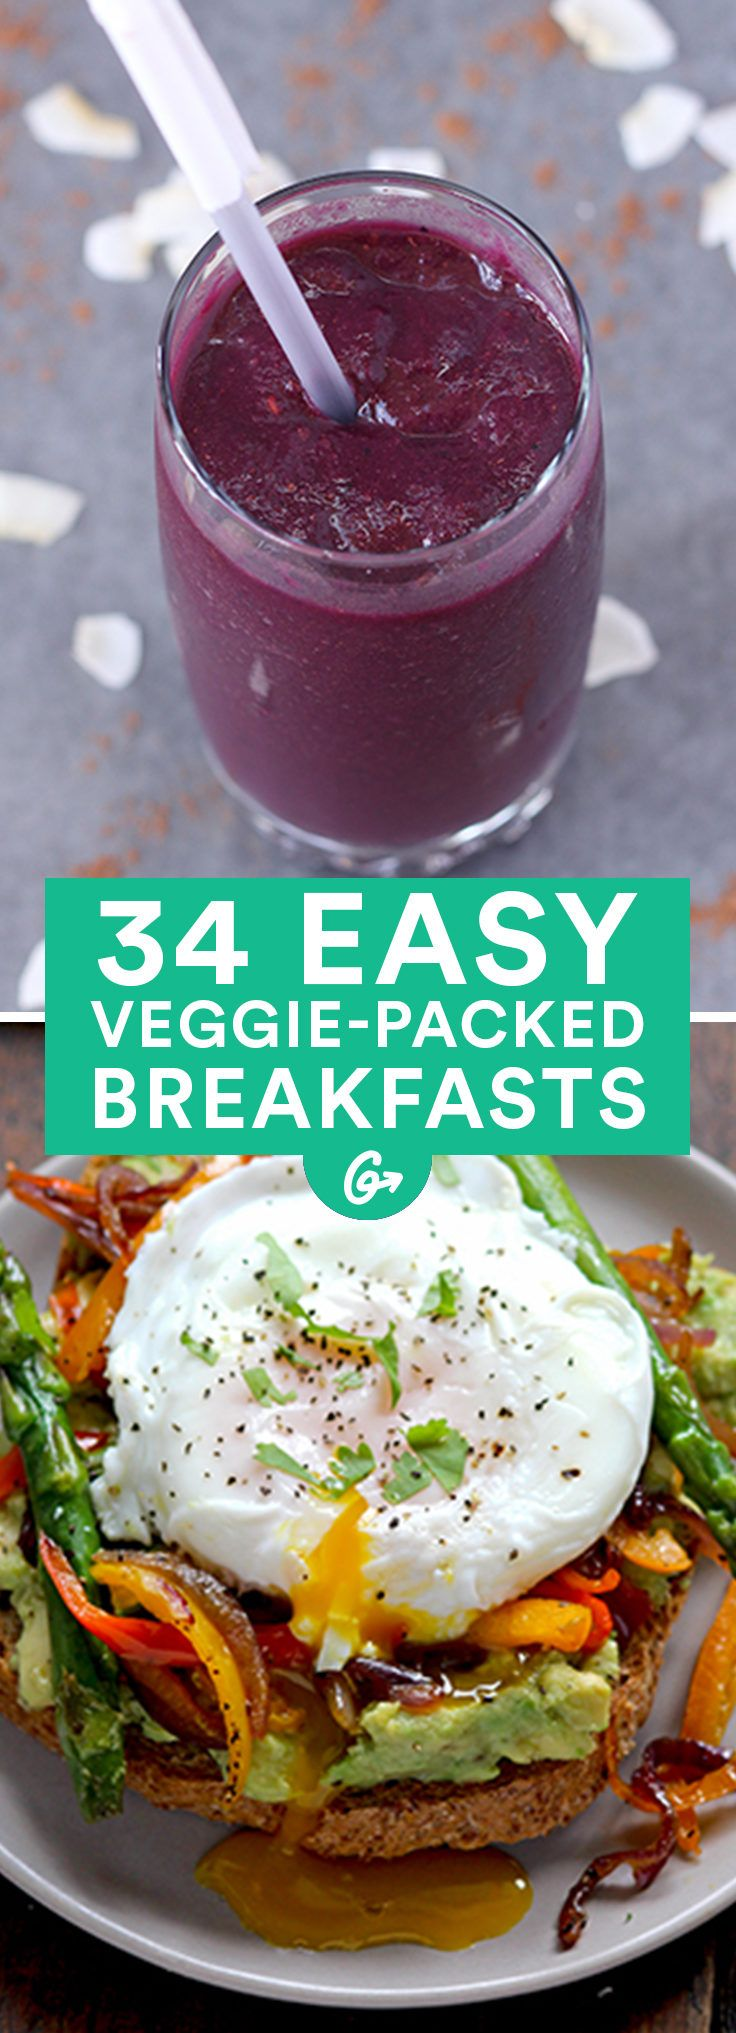 And they're not all omelets! When you want a satisfying, savory start to the day, try one of these crazy delicious dishes. #healthy #breakfast #recipes http://greatist.com/eat/healthy-breakfast-recipes-with-vegetables